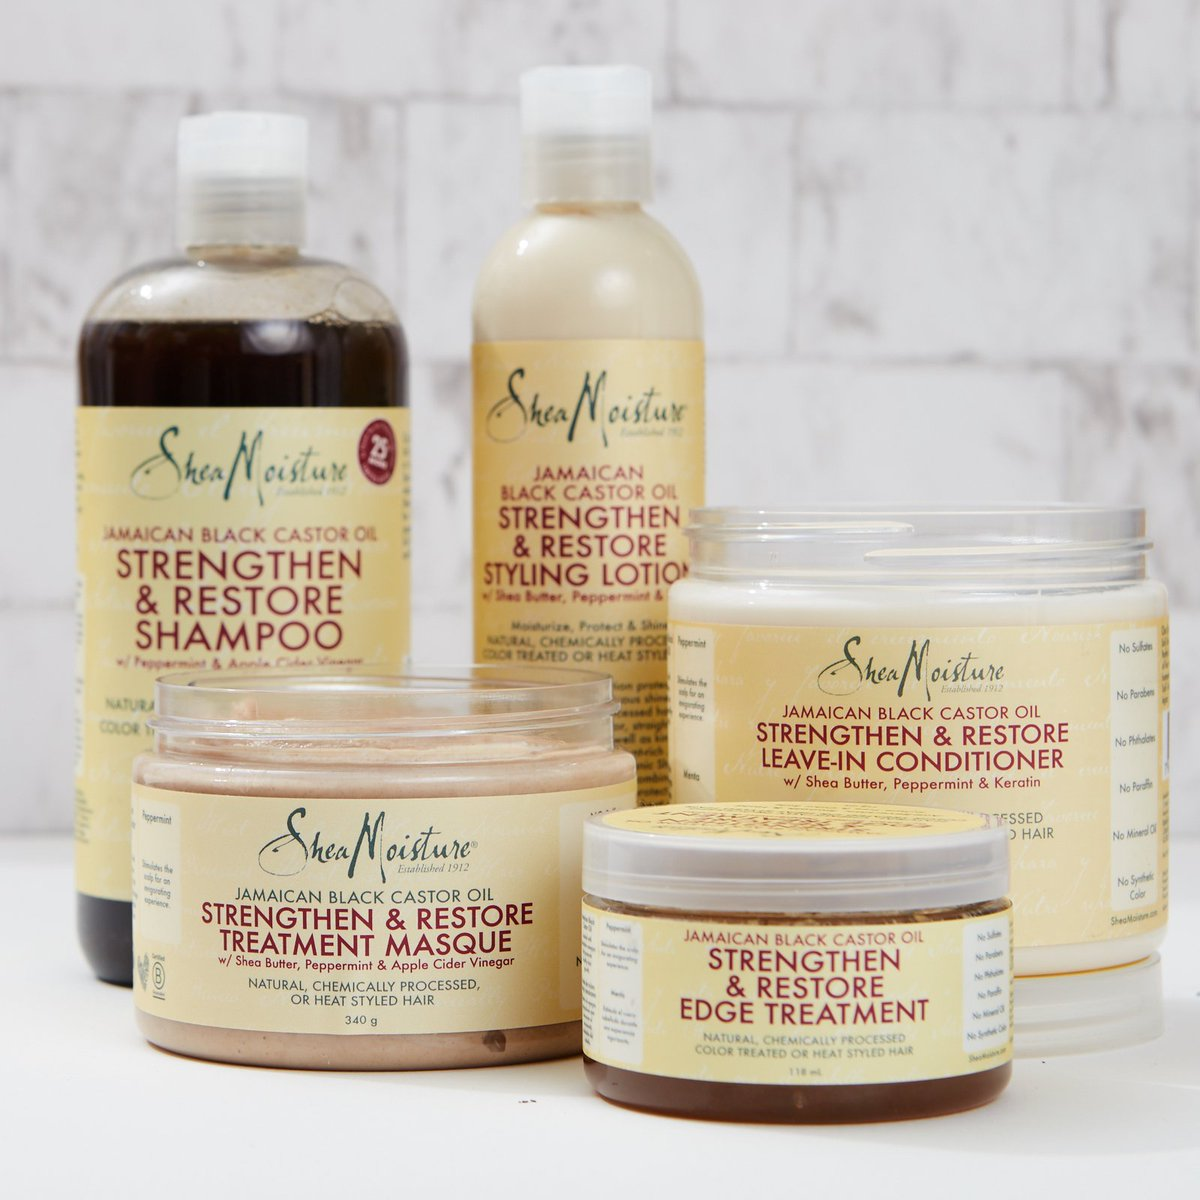 COMPETITION TIME! #Win the #SheaFave Jamaican Black Castor Oil Strengthen & Restore collection by #following us, #RTing this post and commenting below with your best curly hair tip. Ends Wednesday 26th June. T&C's apply. UK only. Good luck! #Follow #RT #Comp